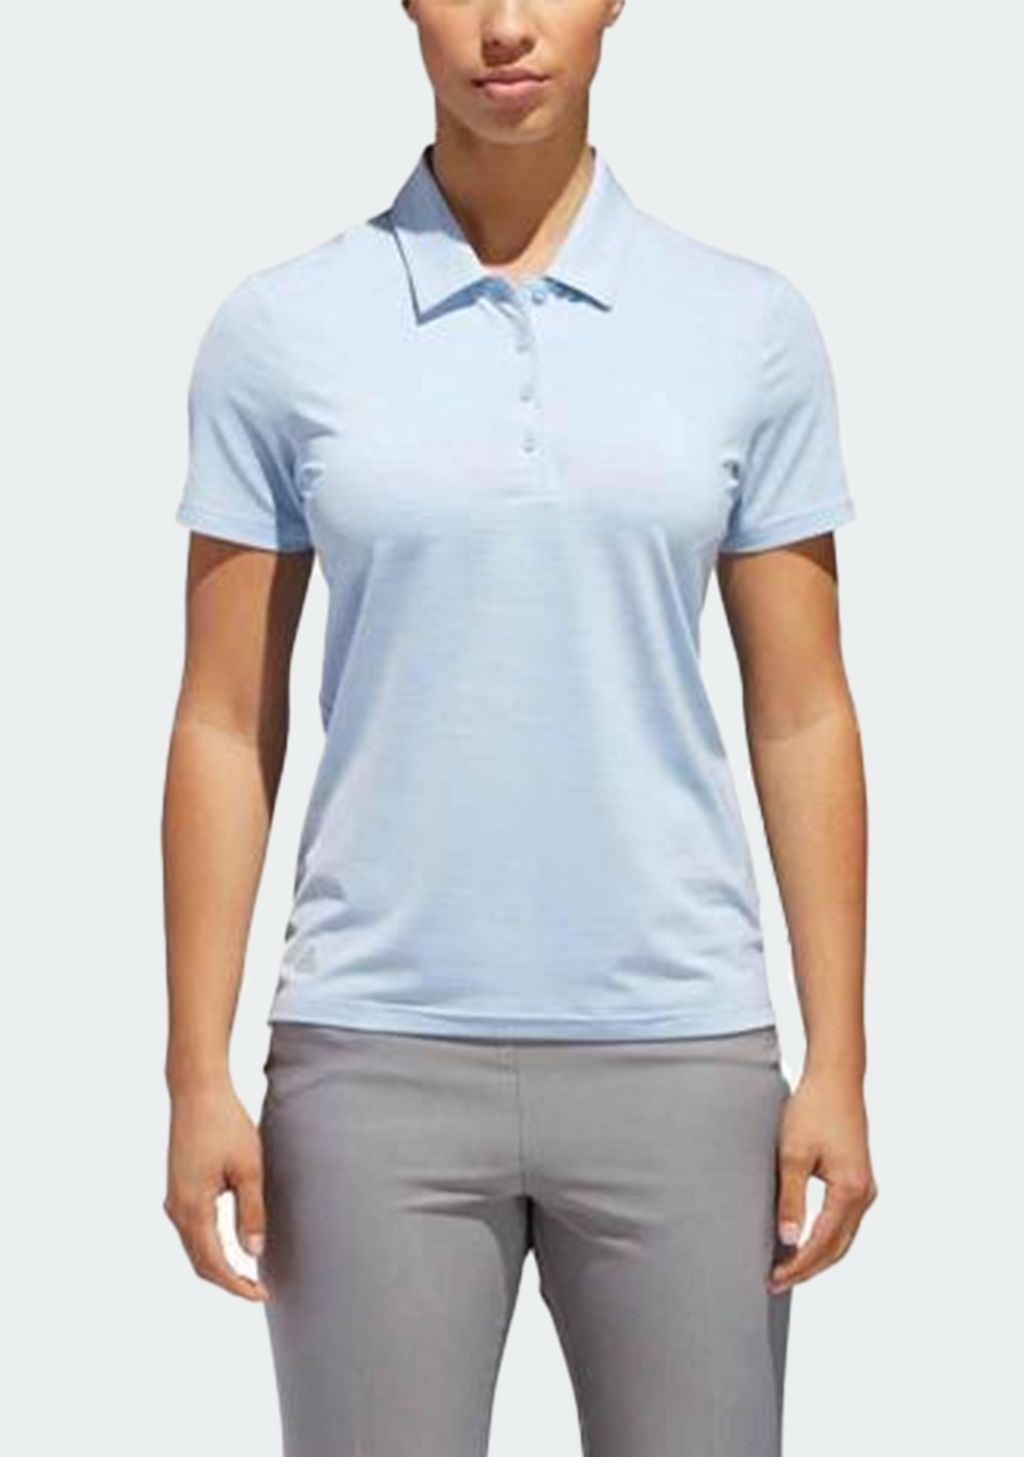 ADIDAS WOMENS ULTIMATE 365 POLO <br> CW6602